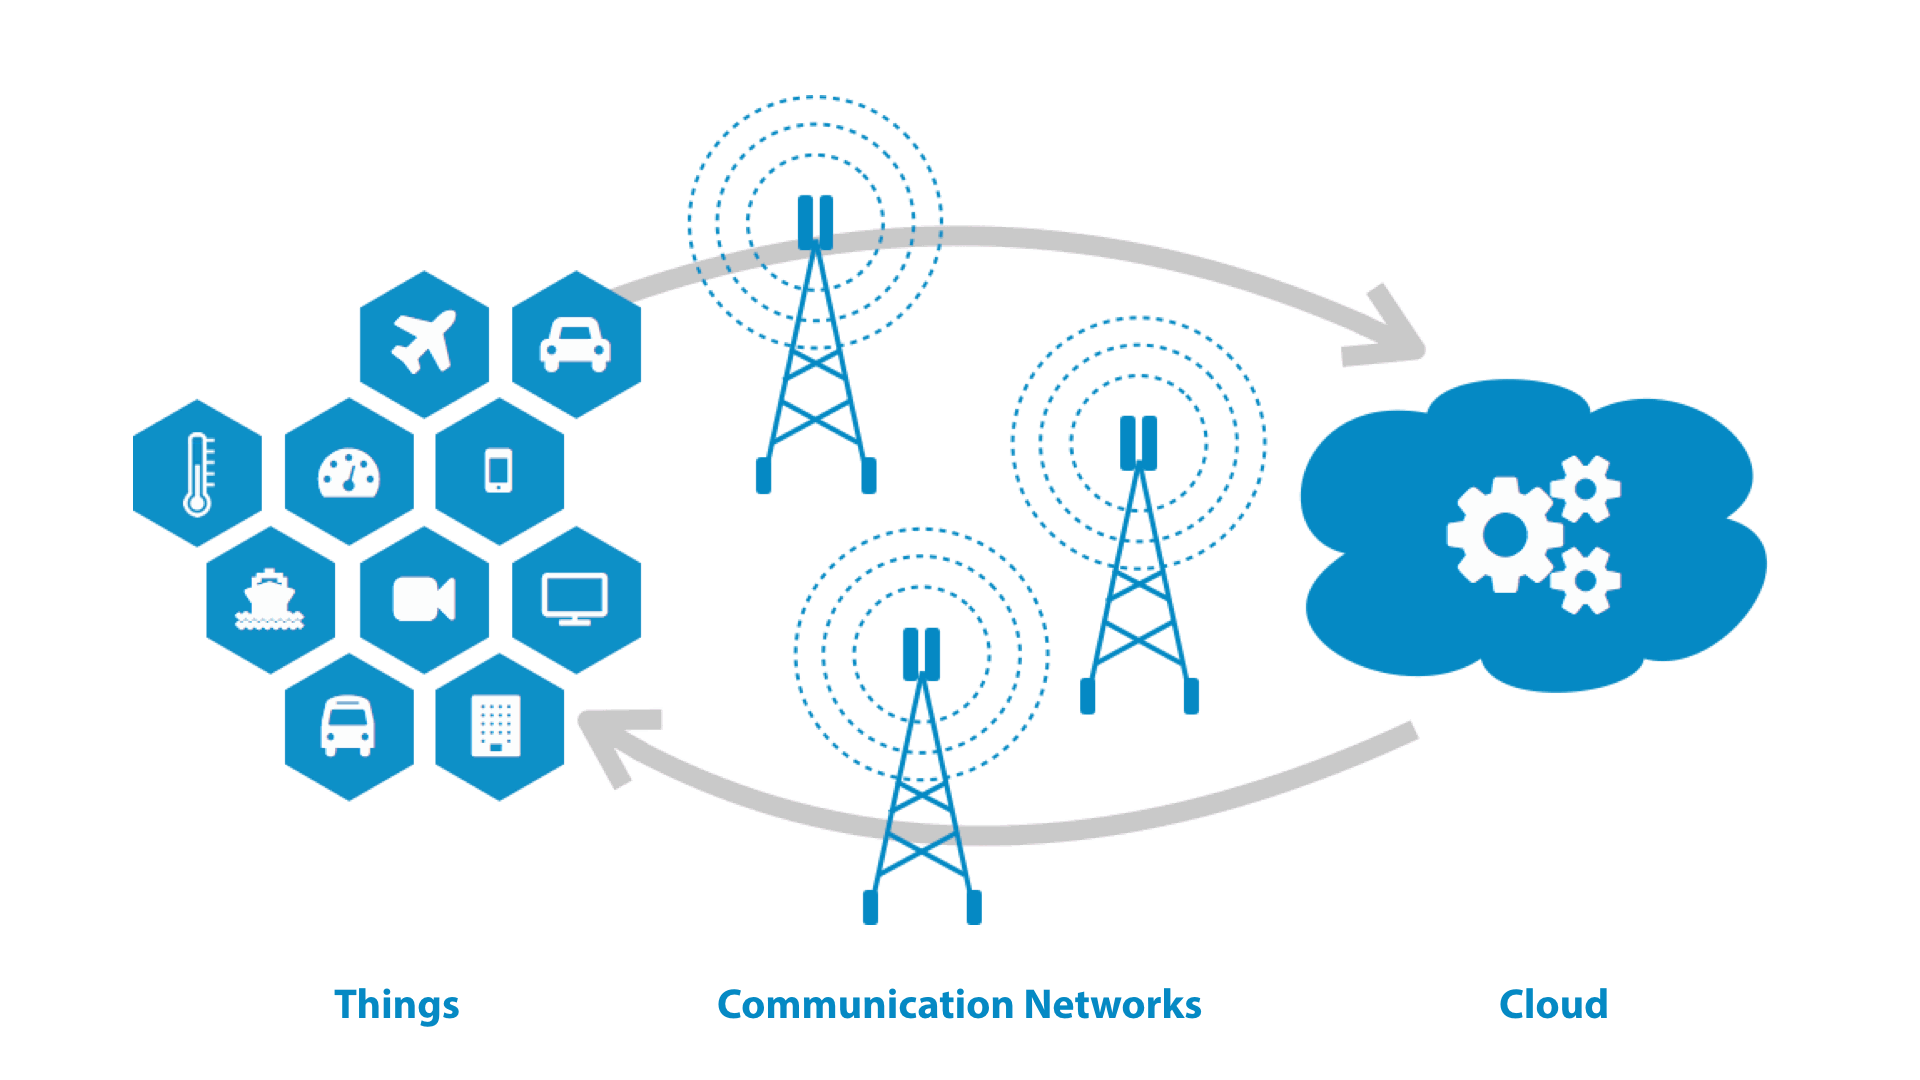 IoT: Things - Communication Networks - Cloud